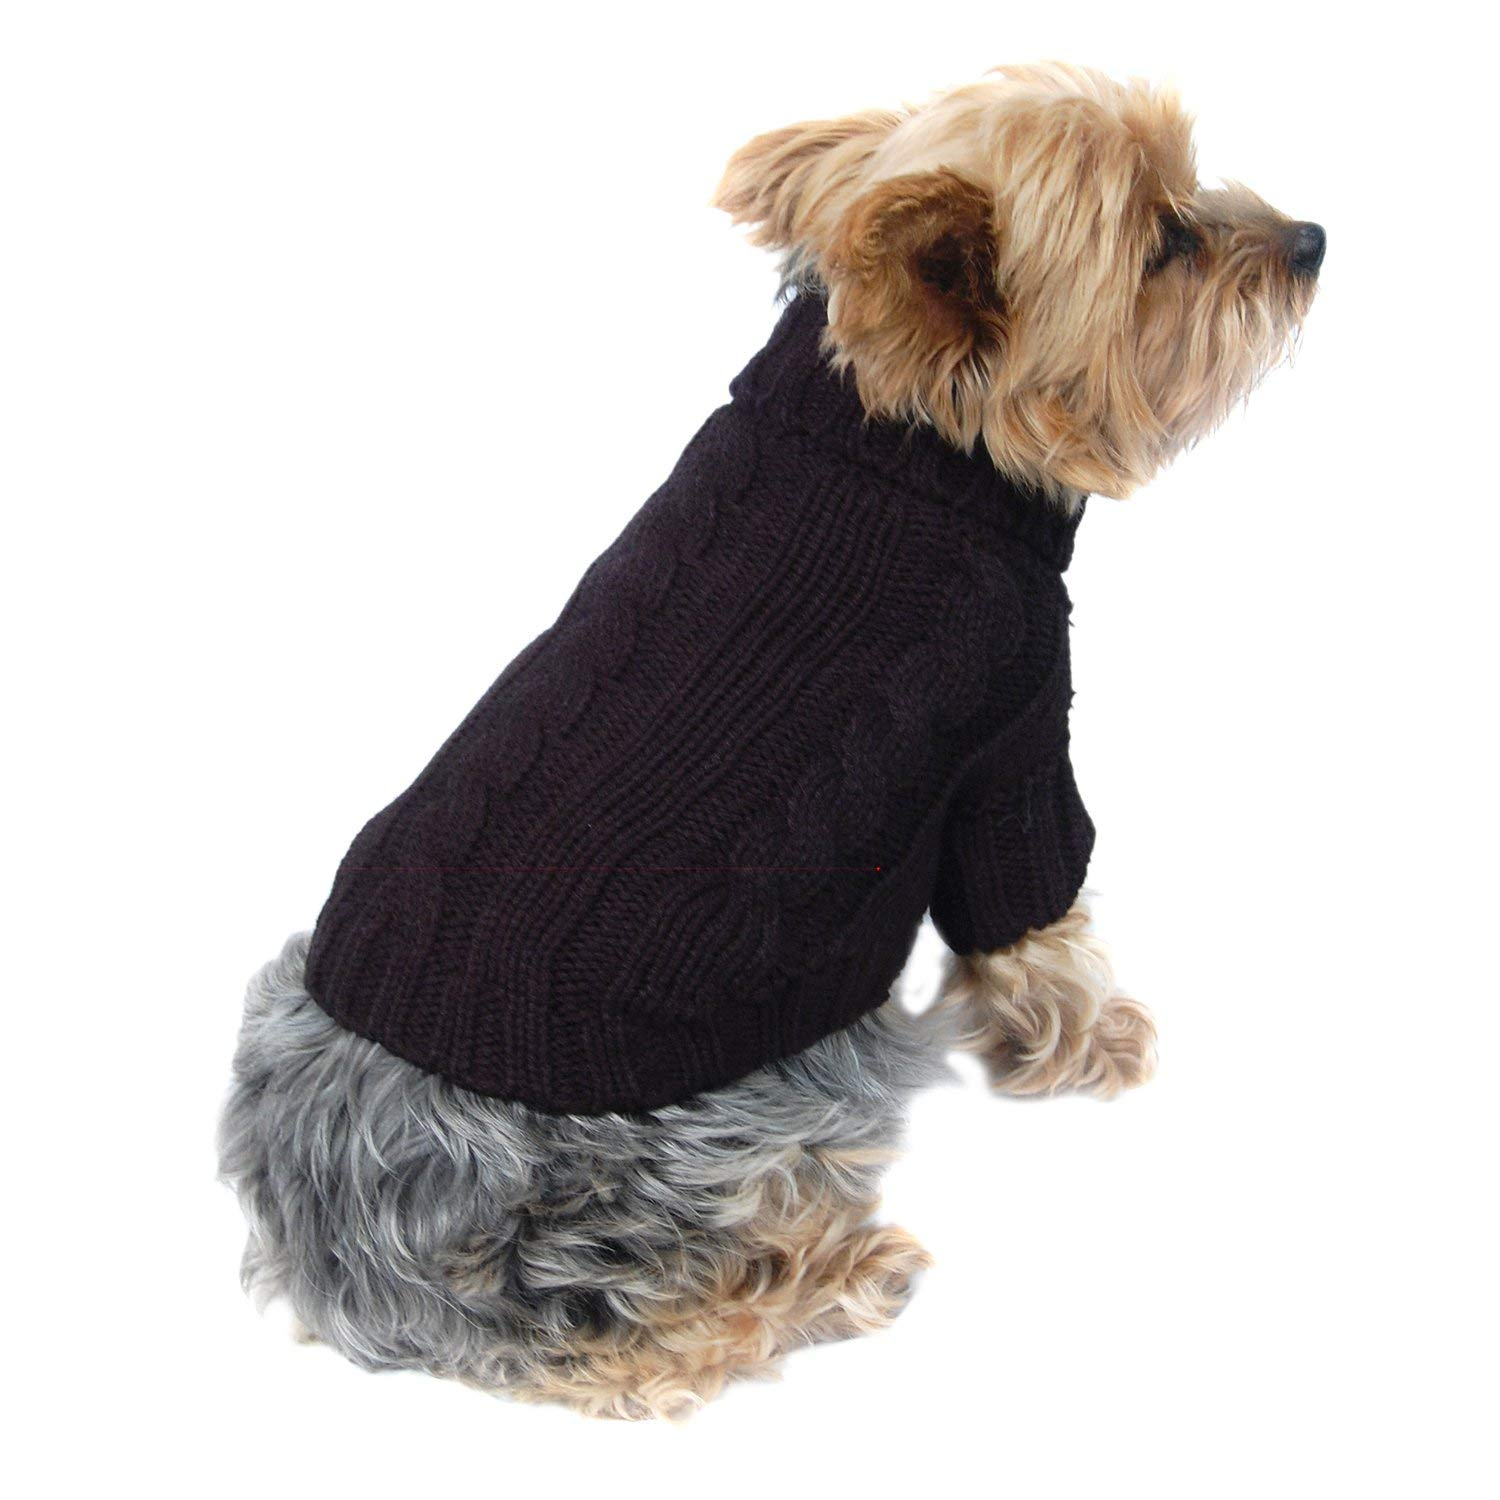 1639a3c45aab Get Quotations · Anima Black Classic Cable Knit Dog and Pet Sweater, X Small